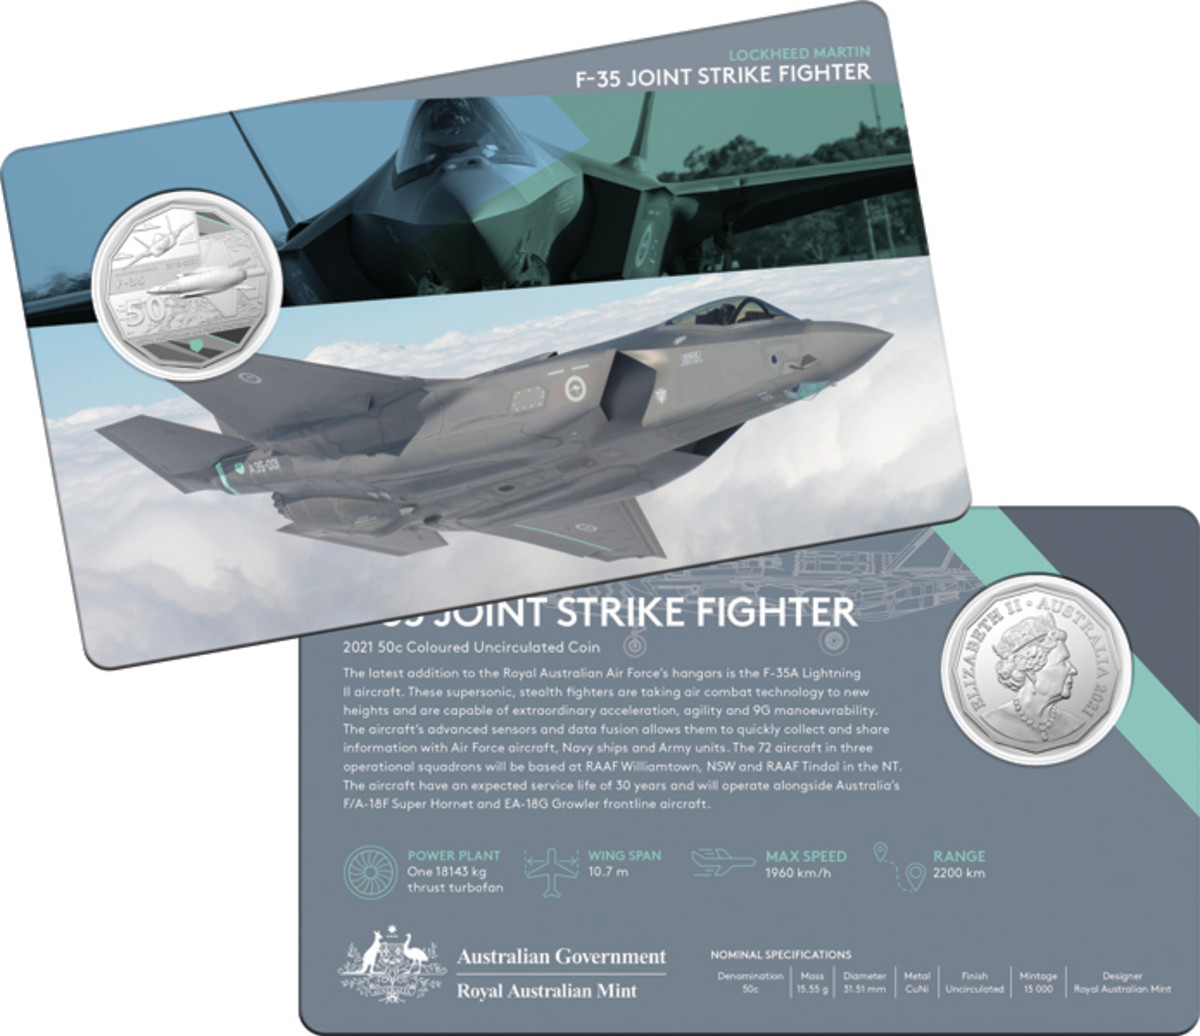 The RAAF's latest supersonic, stealth fighter, the F-35A Lightning II aircraft is expected to remain in service for 30 years. It can fly at 1,960 kilometers an hour and sports 9G maneuverability.